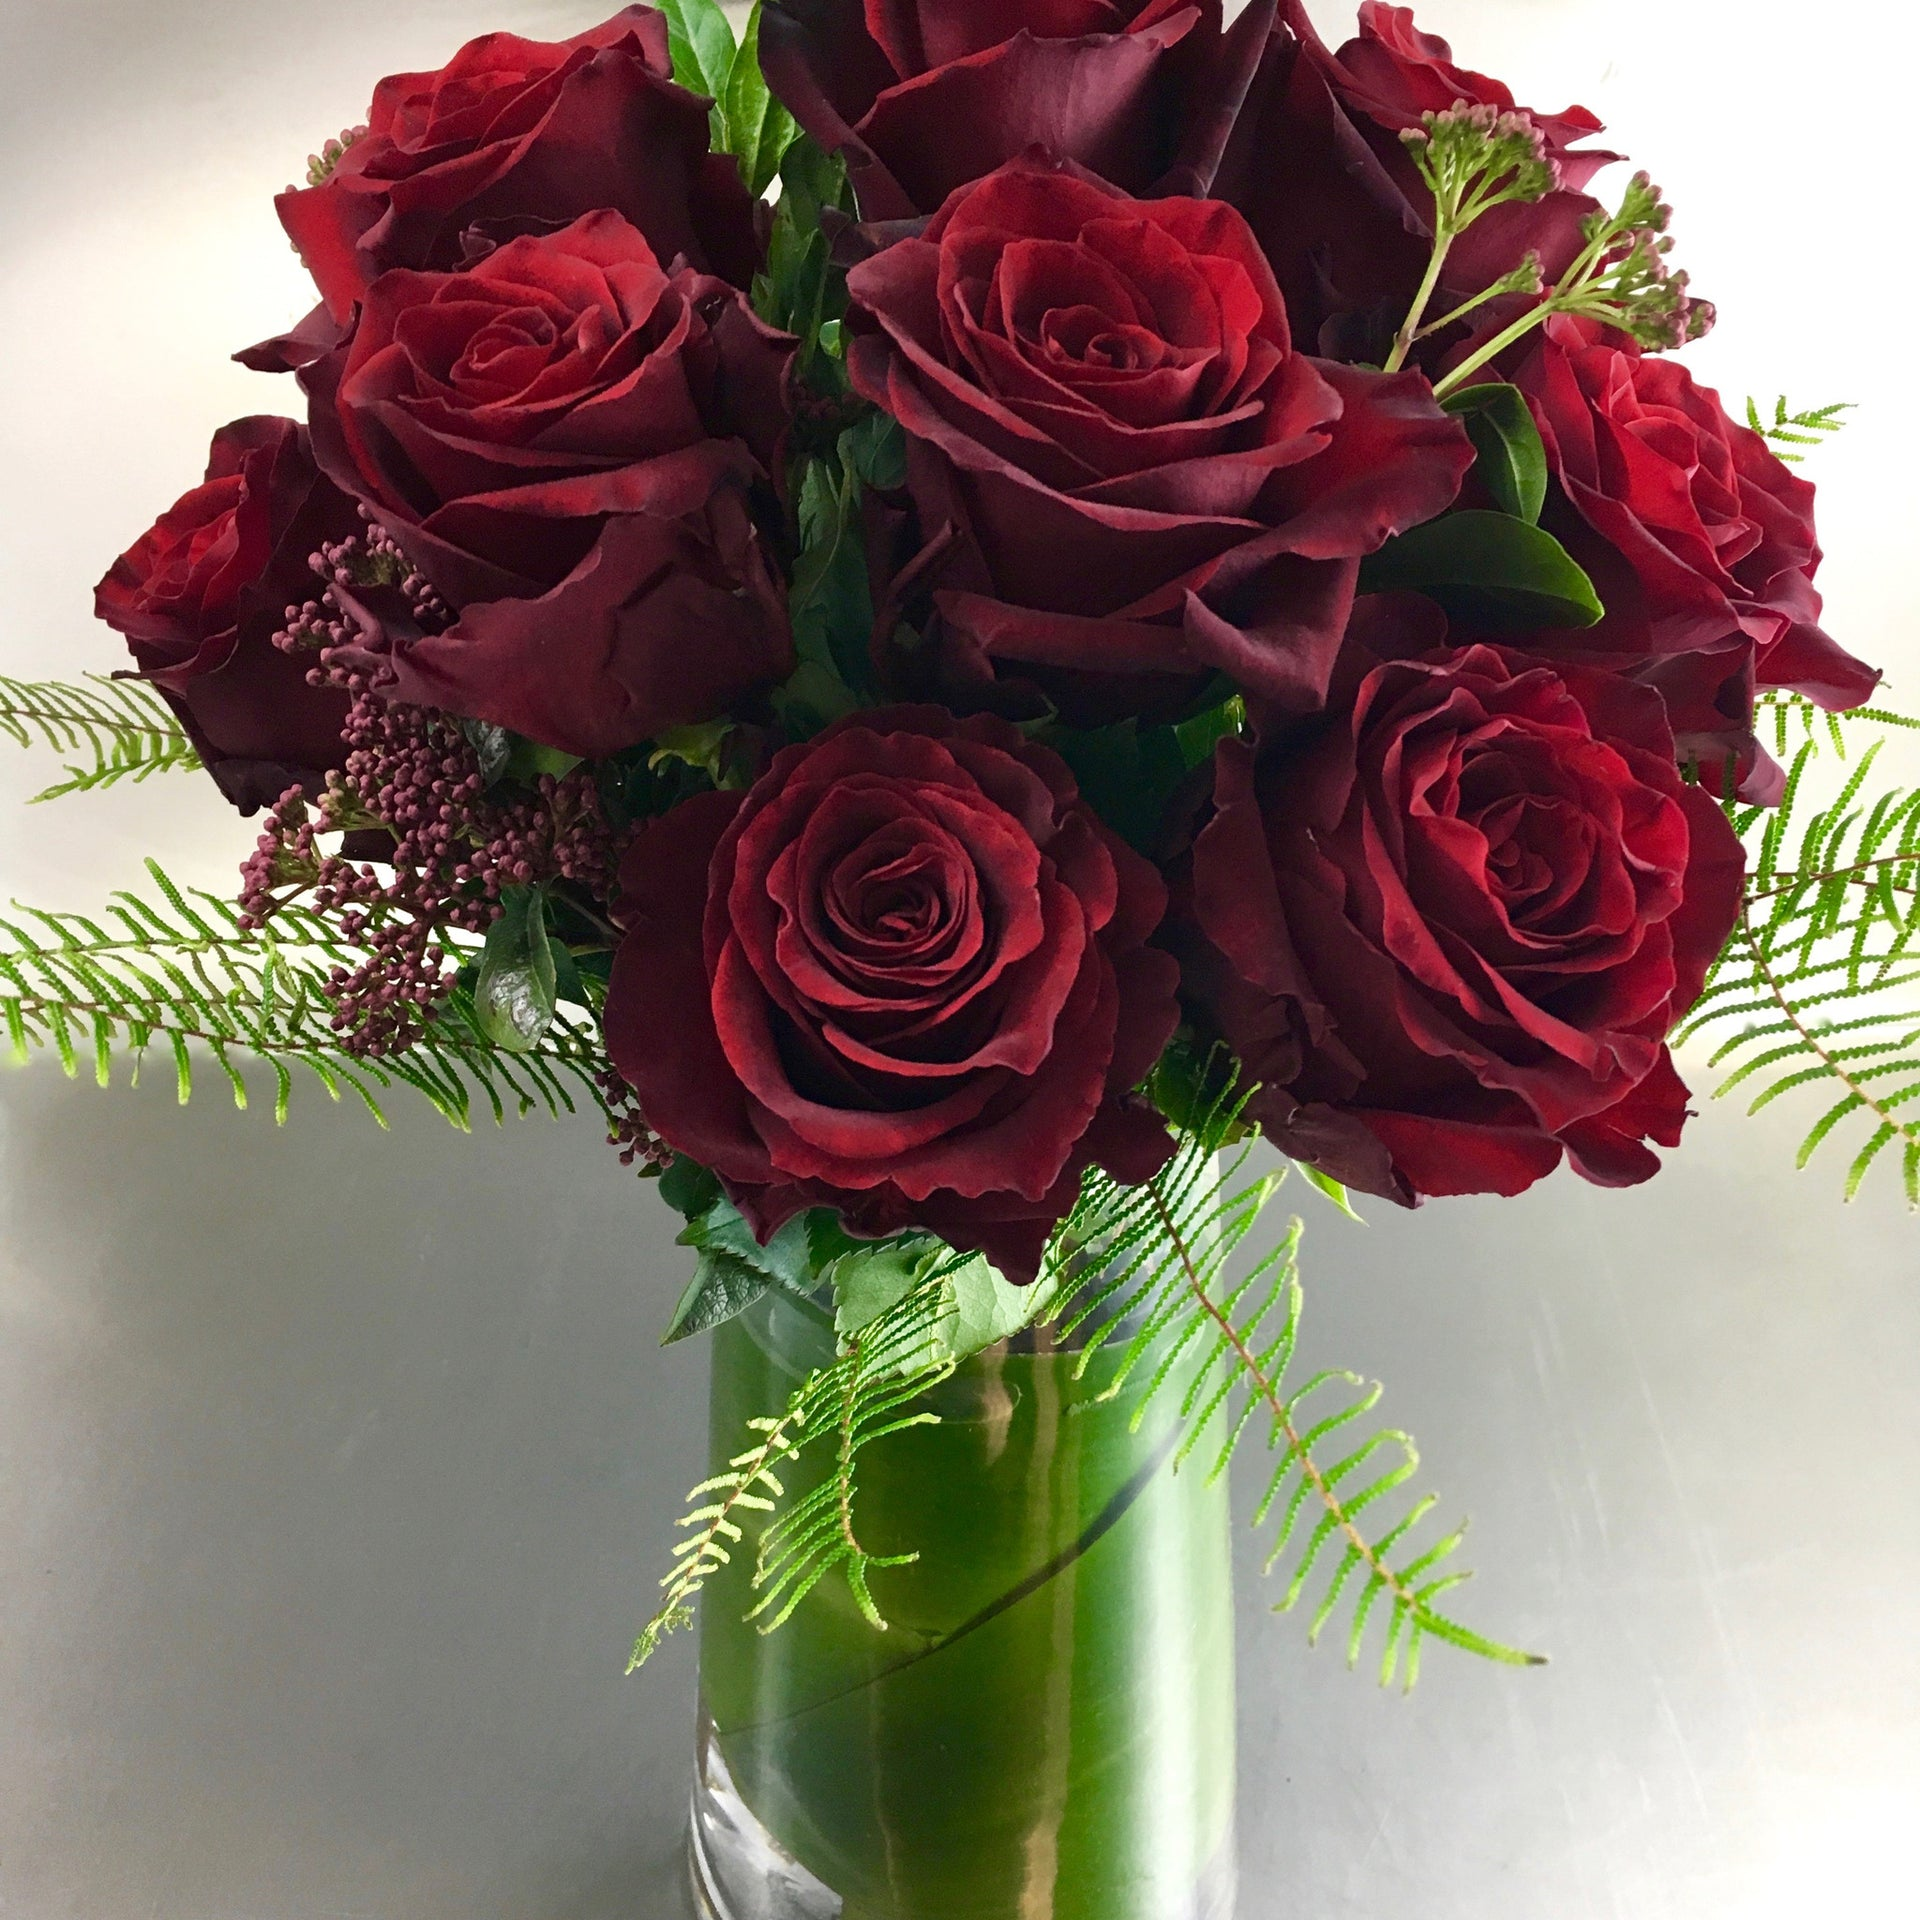 Dozen red roses and greenery in a tall glass vase.